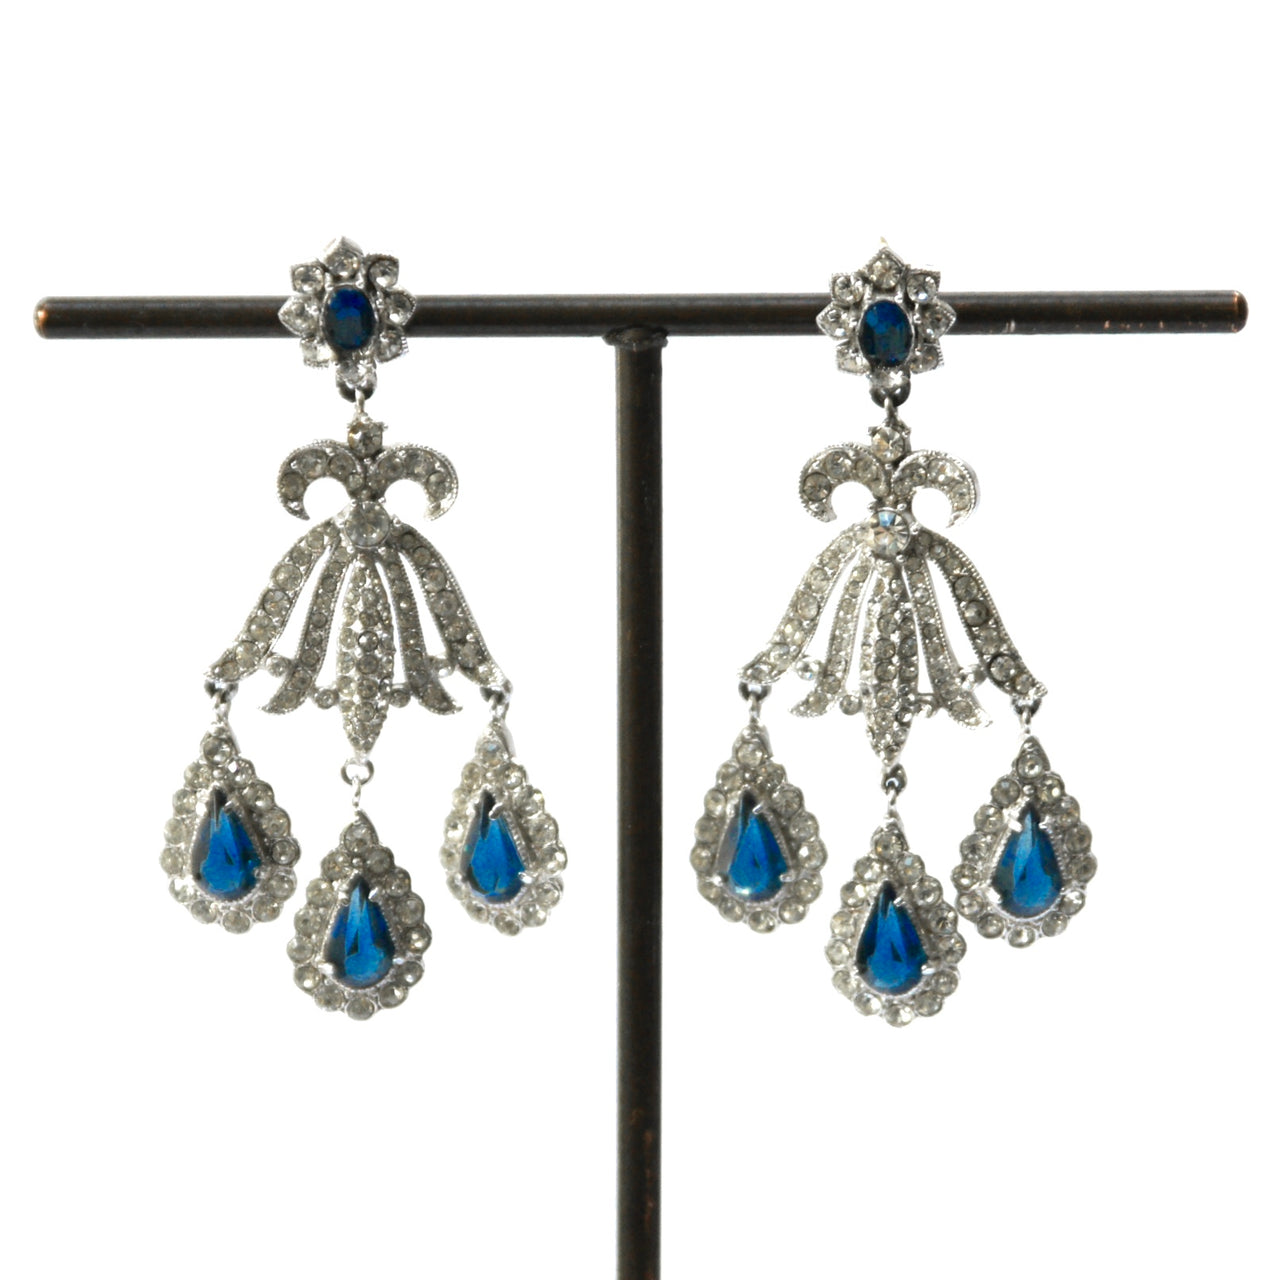 Eclectica Vintage Jewellery | UK | 1960s Vintage Chandelier Earrings, Pierced